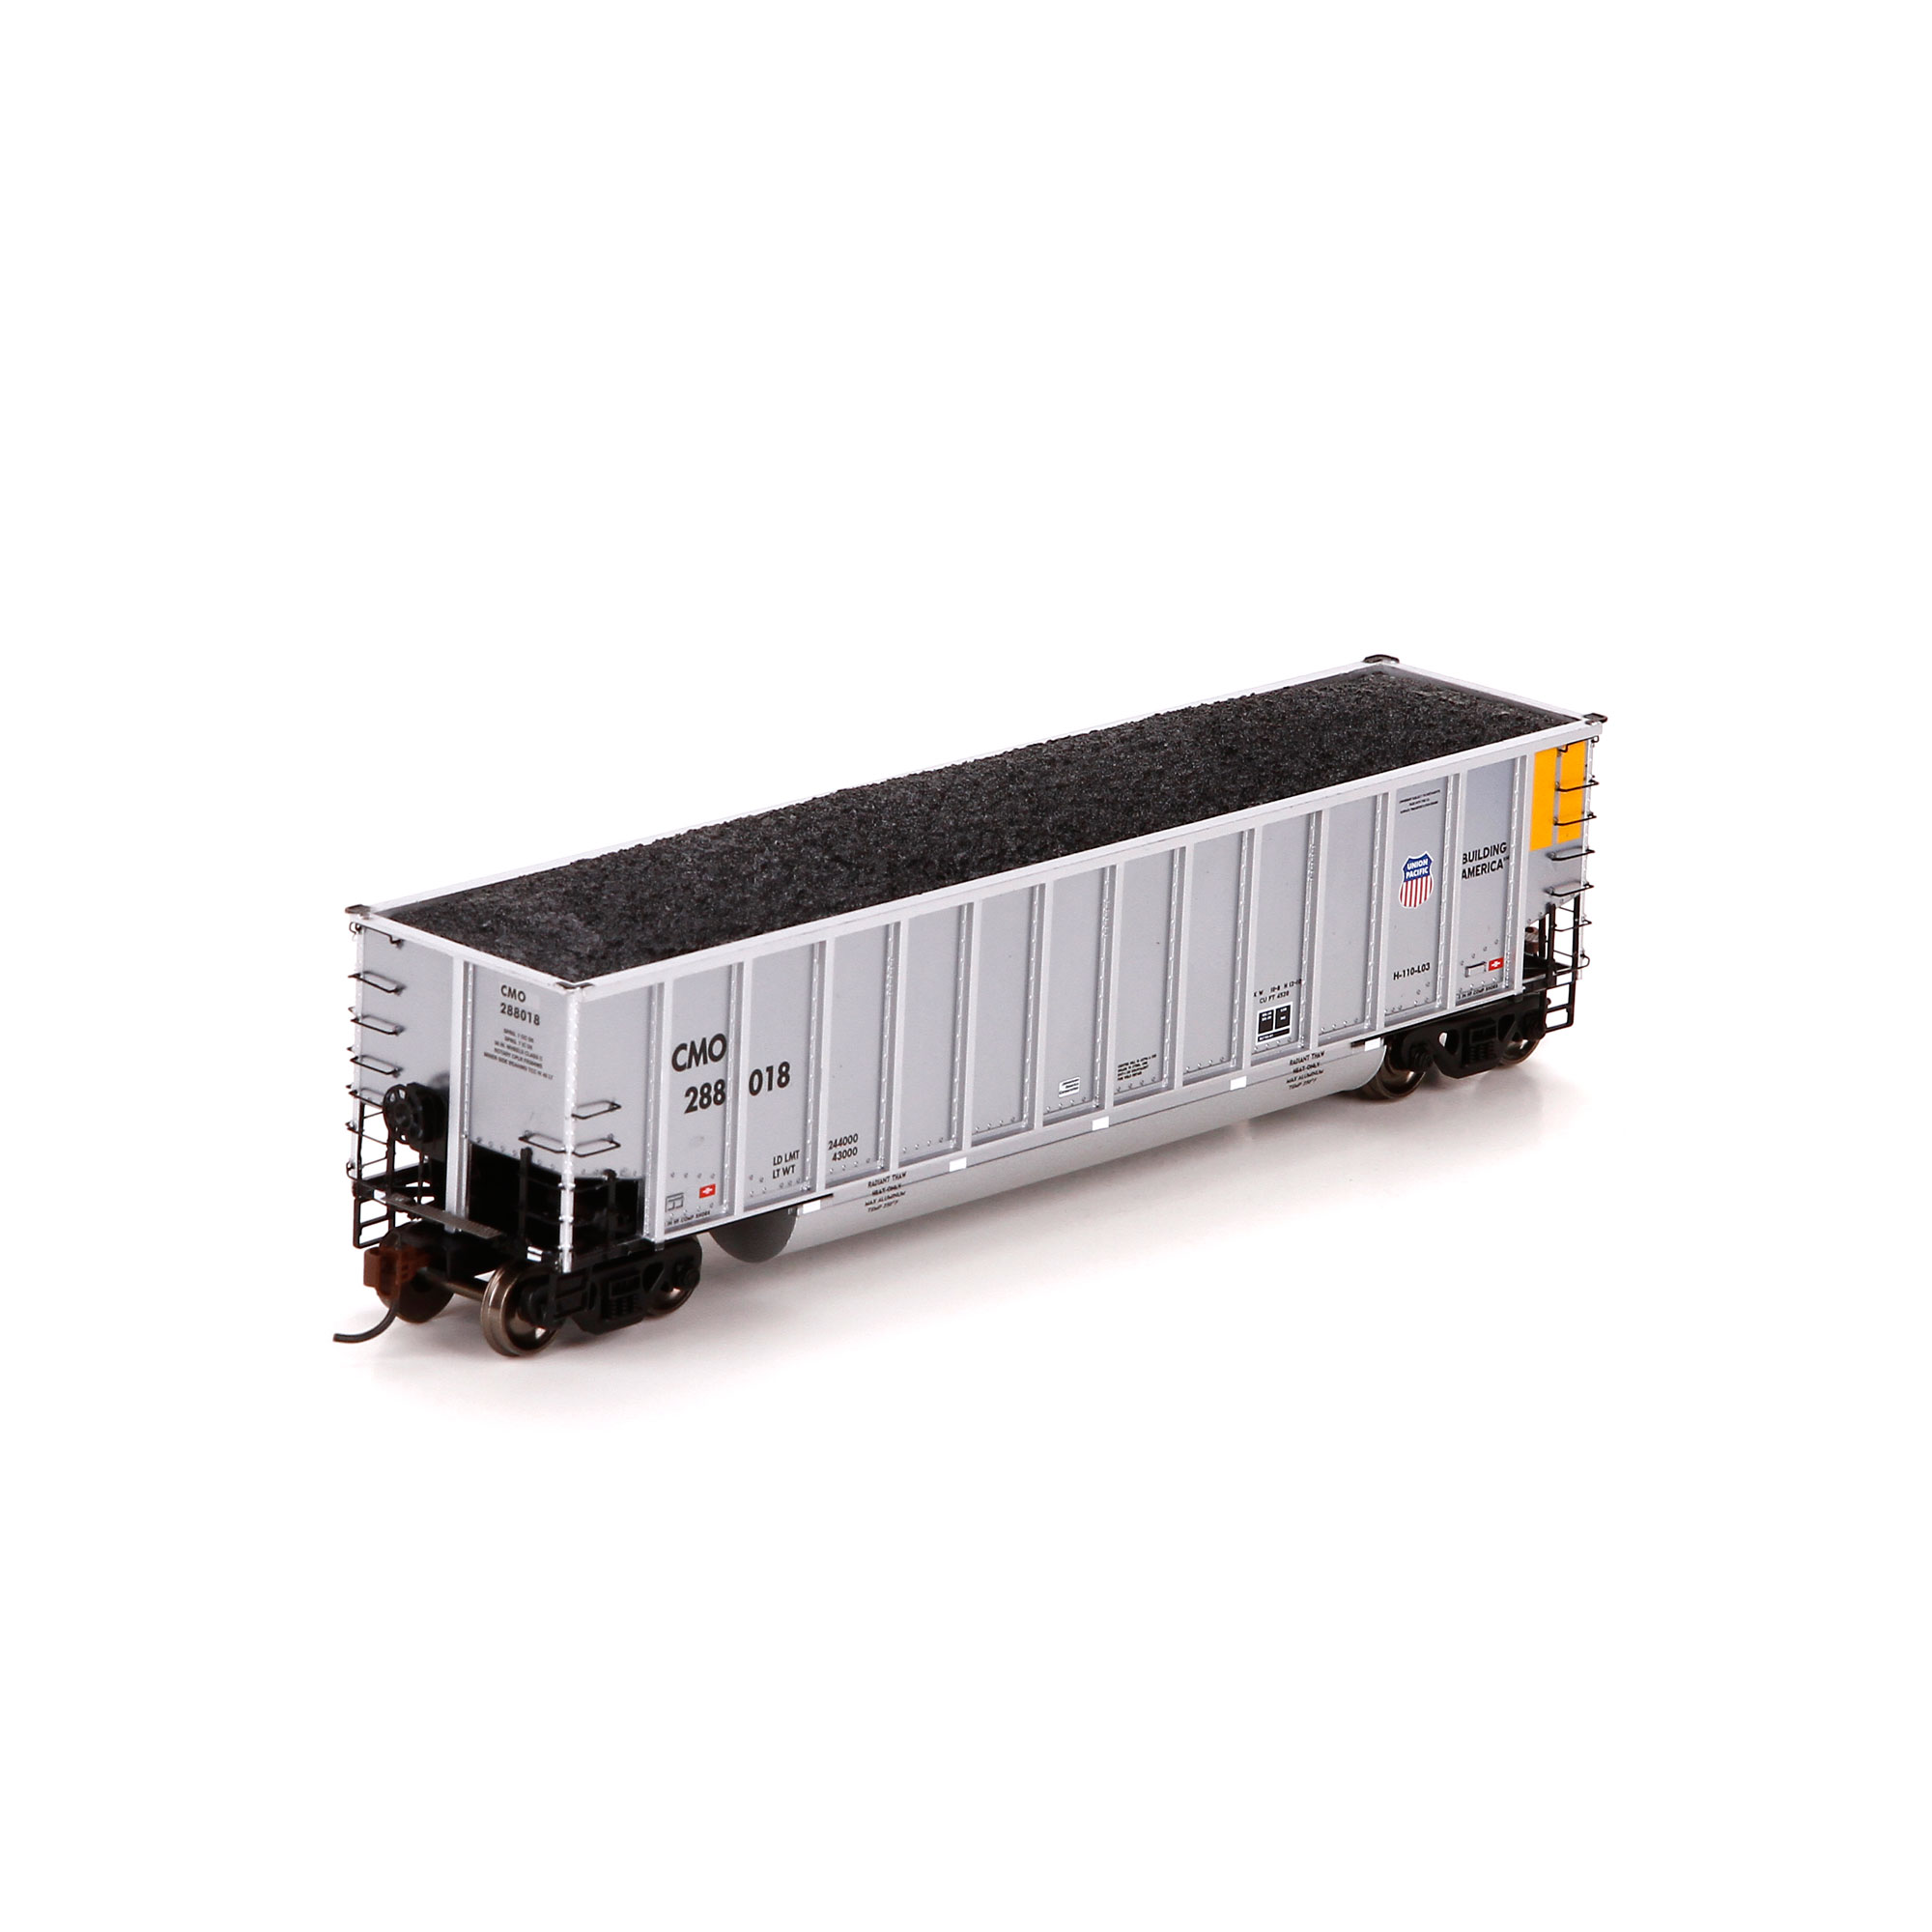 Csx Stock Quote: HO Athearn Ready To Roll Rolling Stock